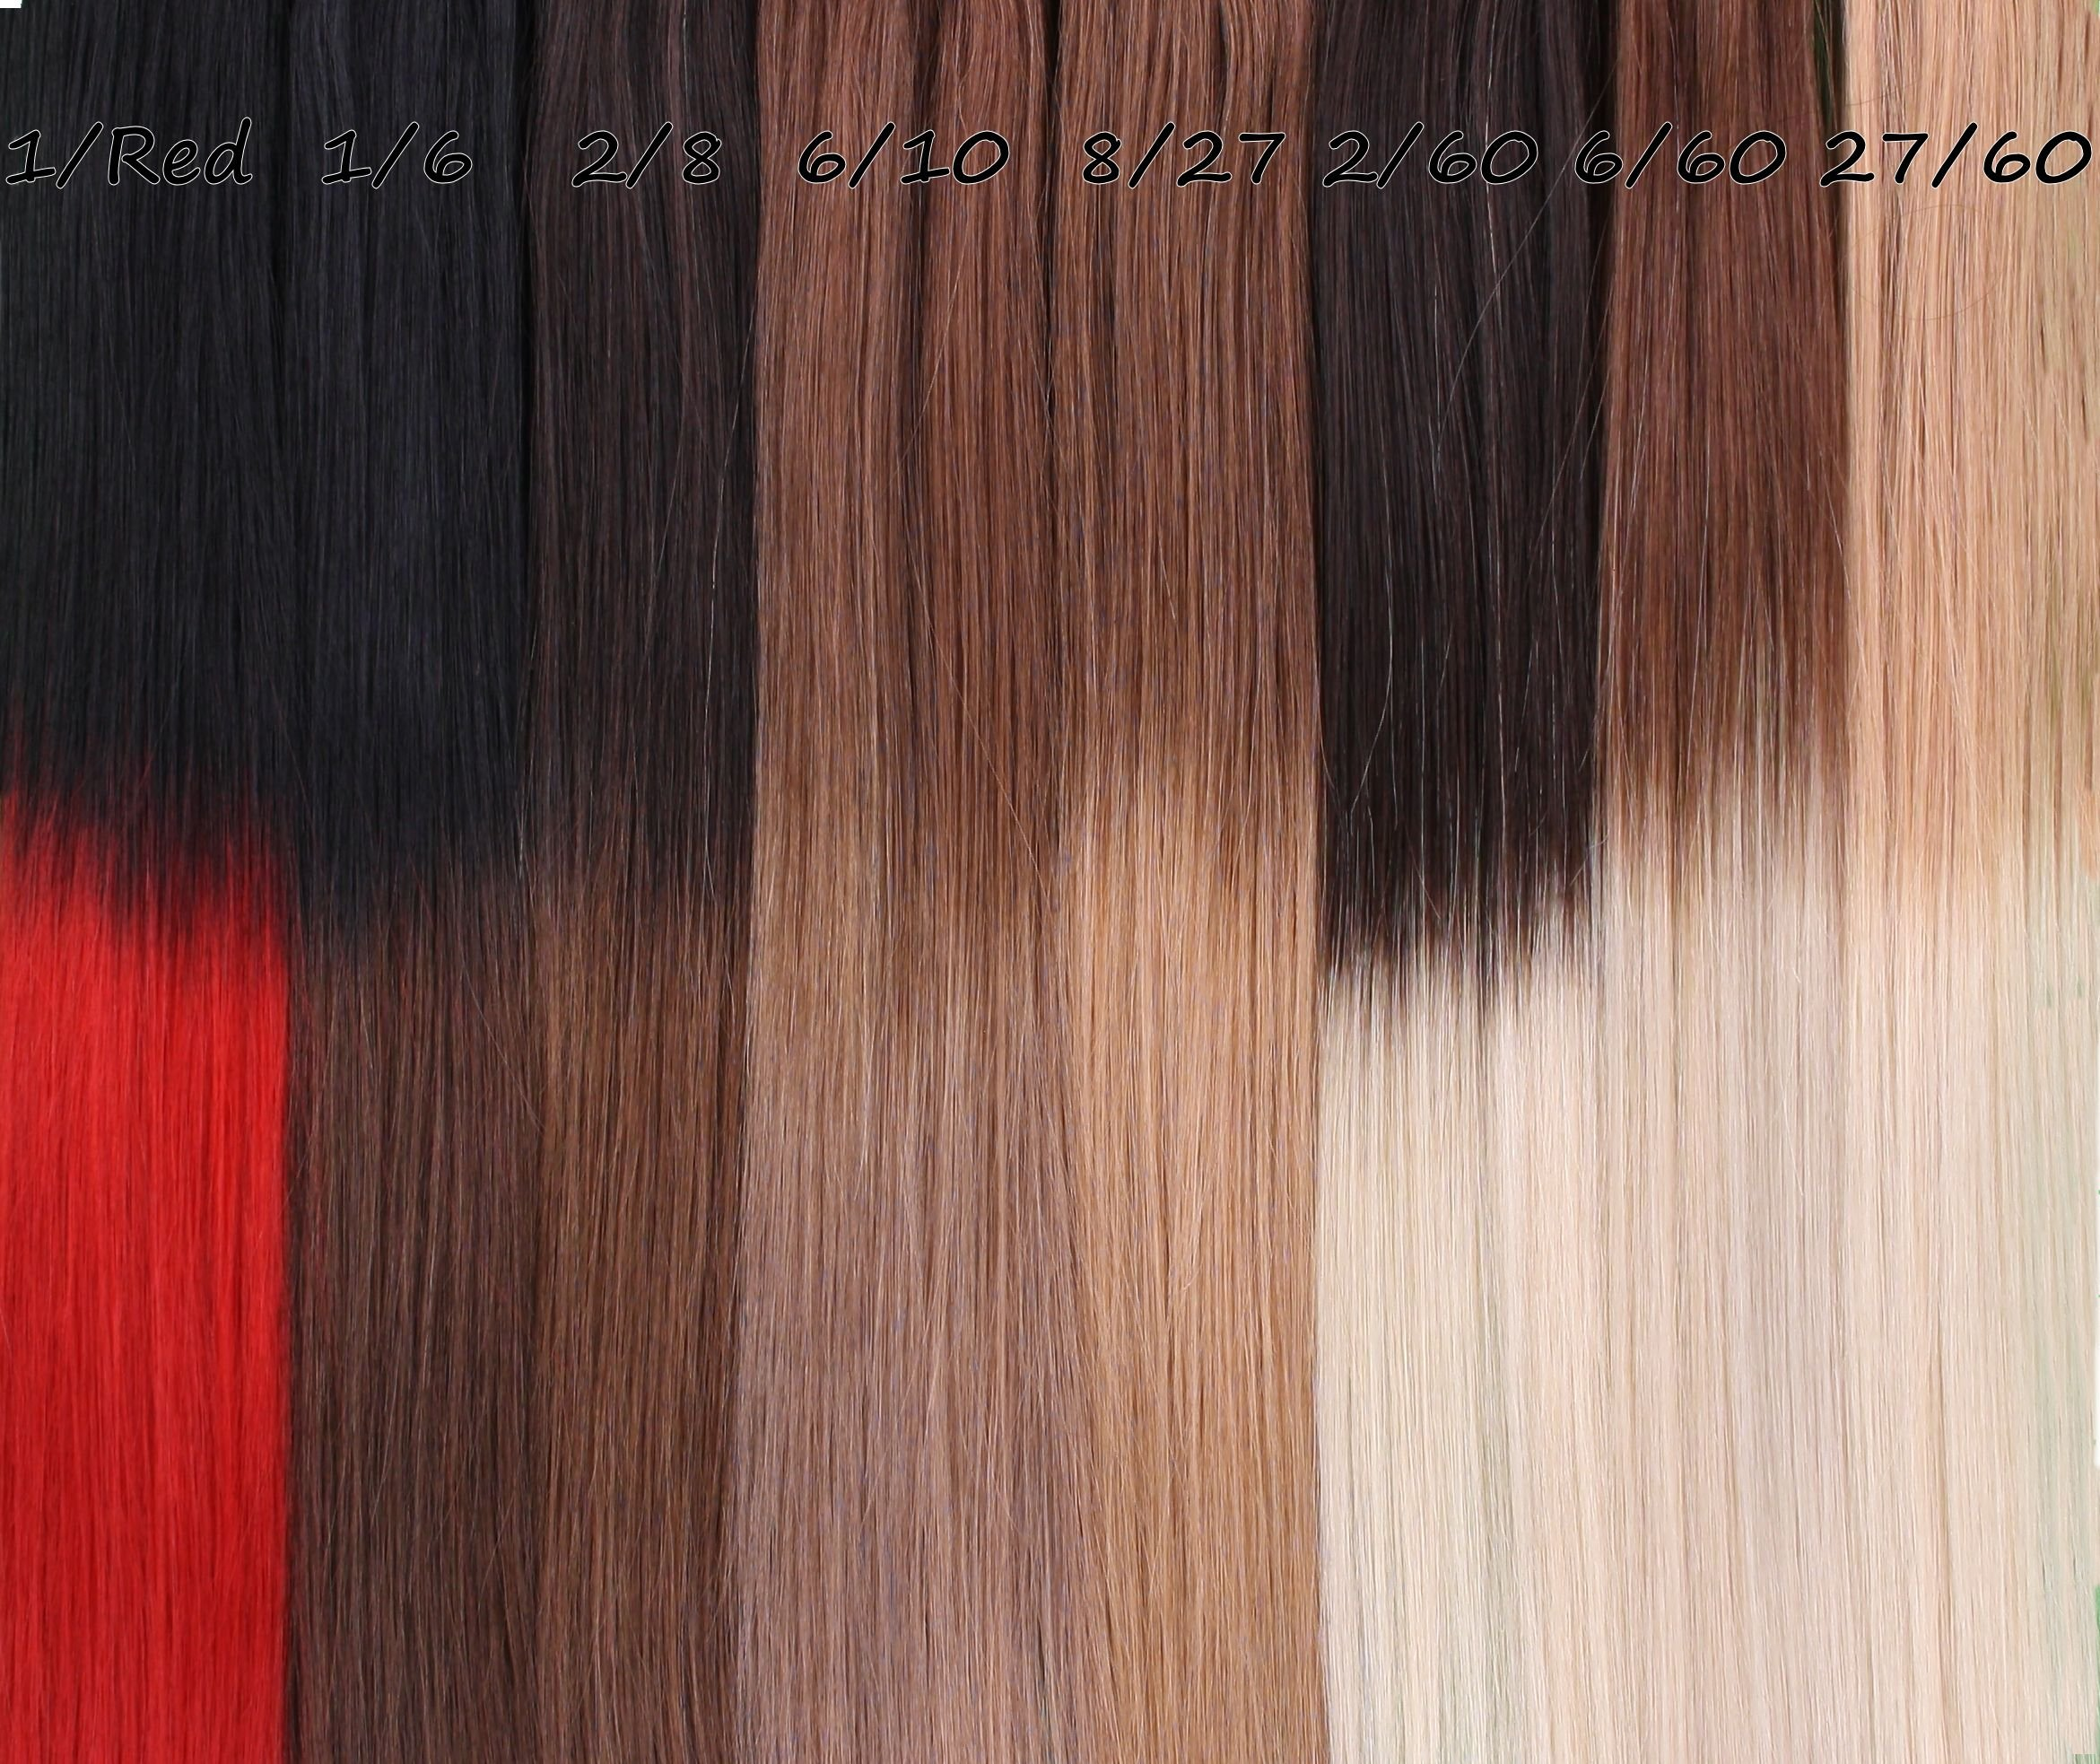 Cold Fusion Hair Extensions Nyc Hair Extensions Richardson